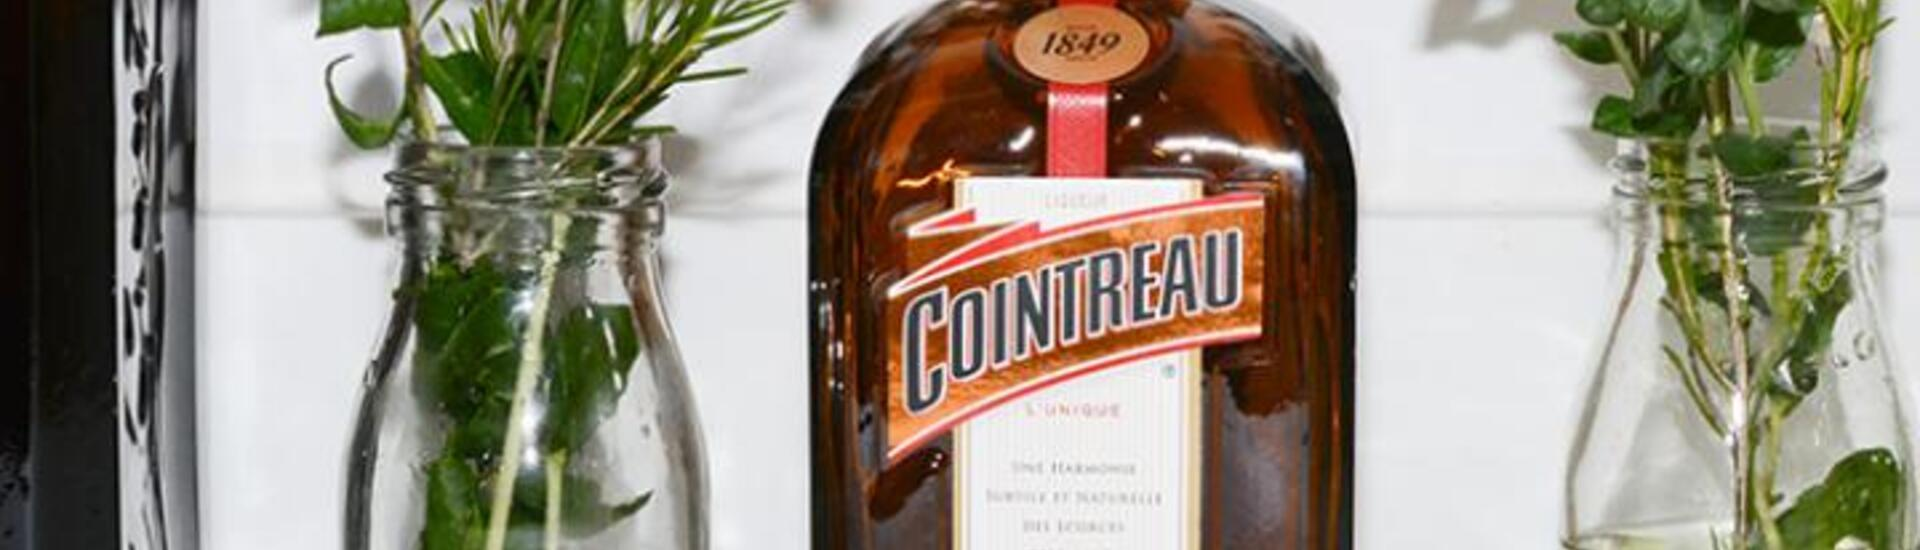 How to dress the perfect table for a Cointreau inspired party!